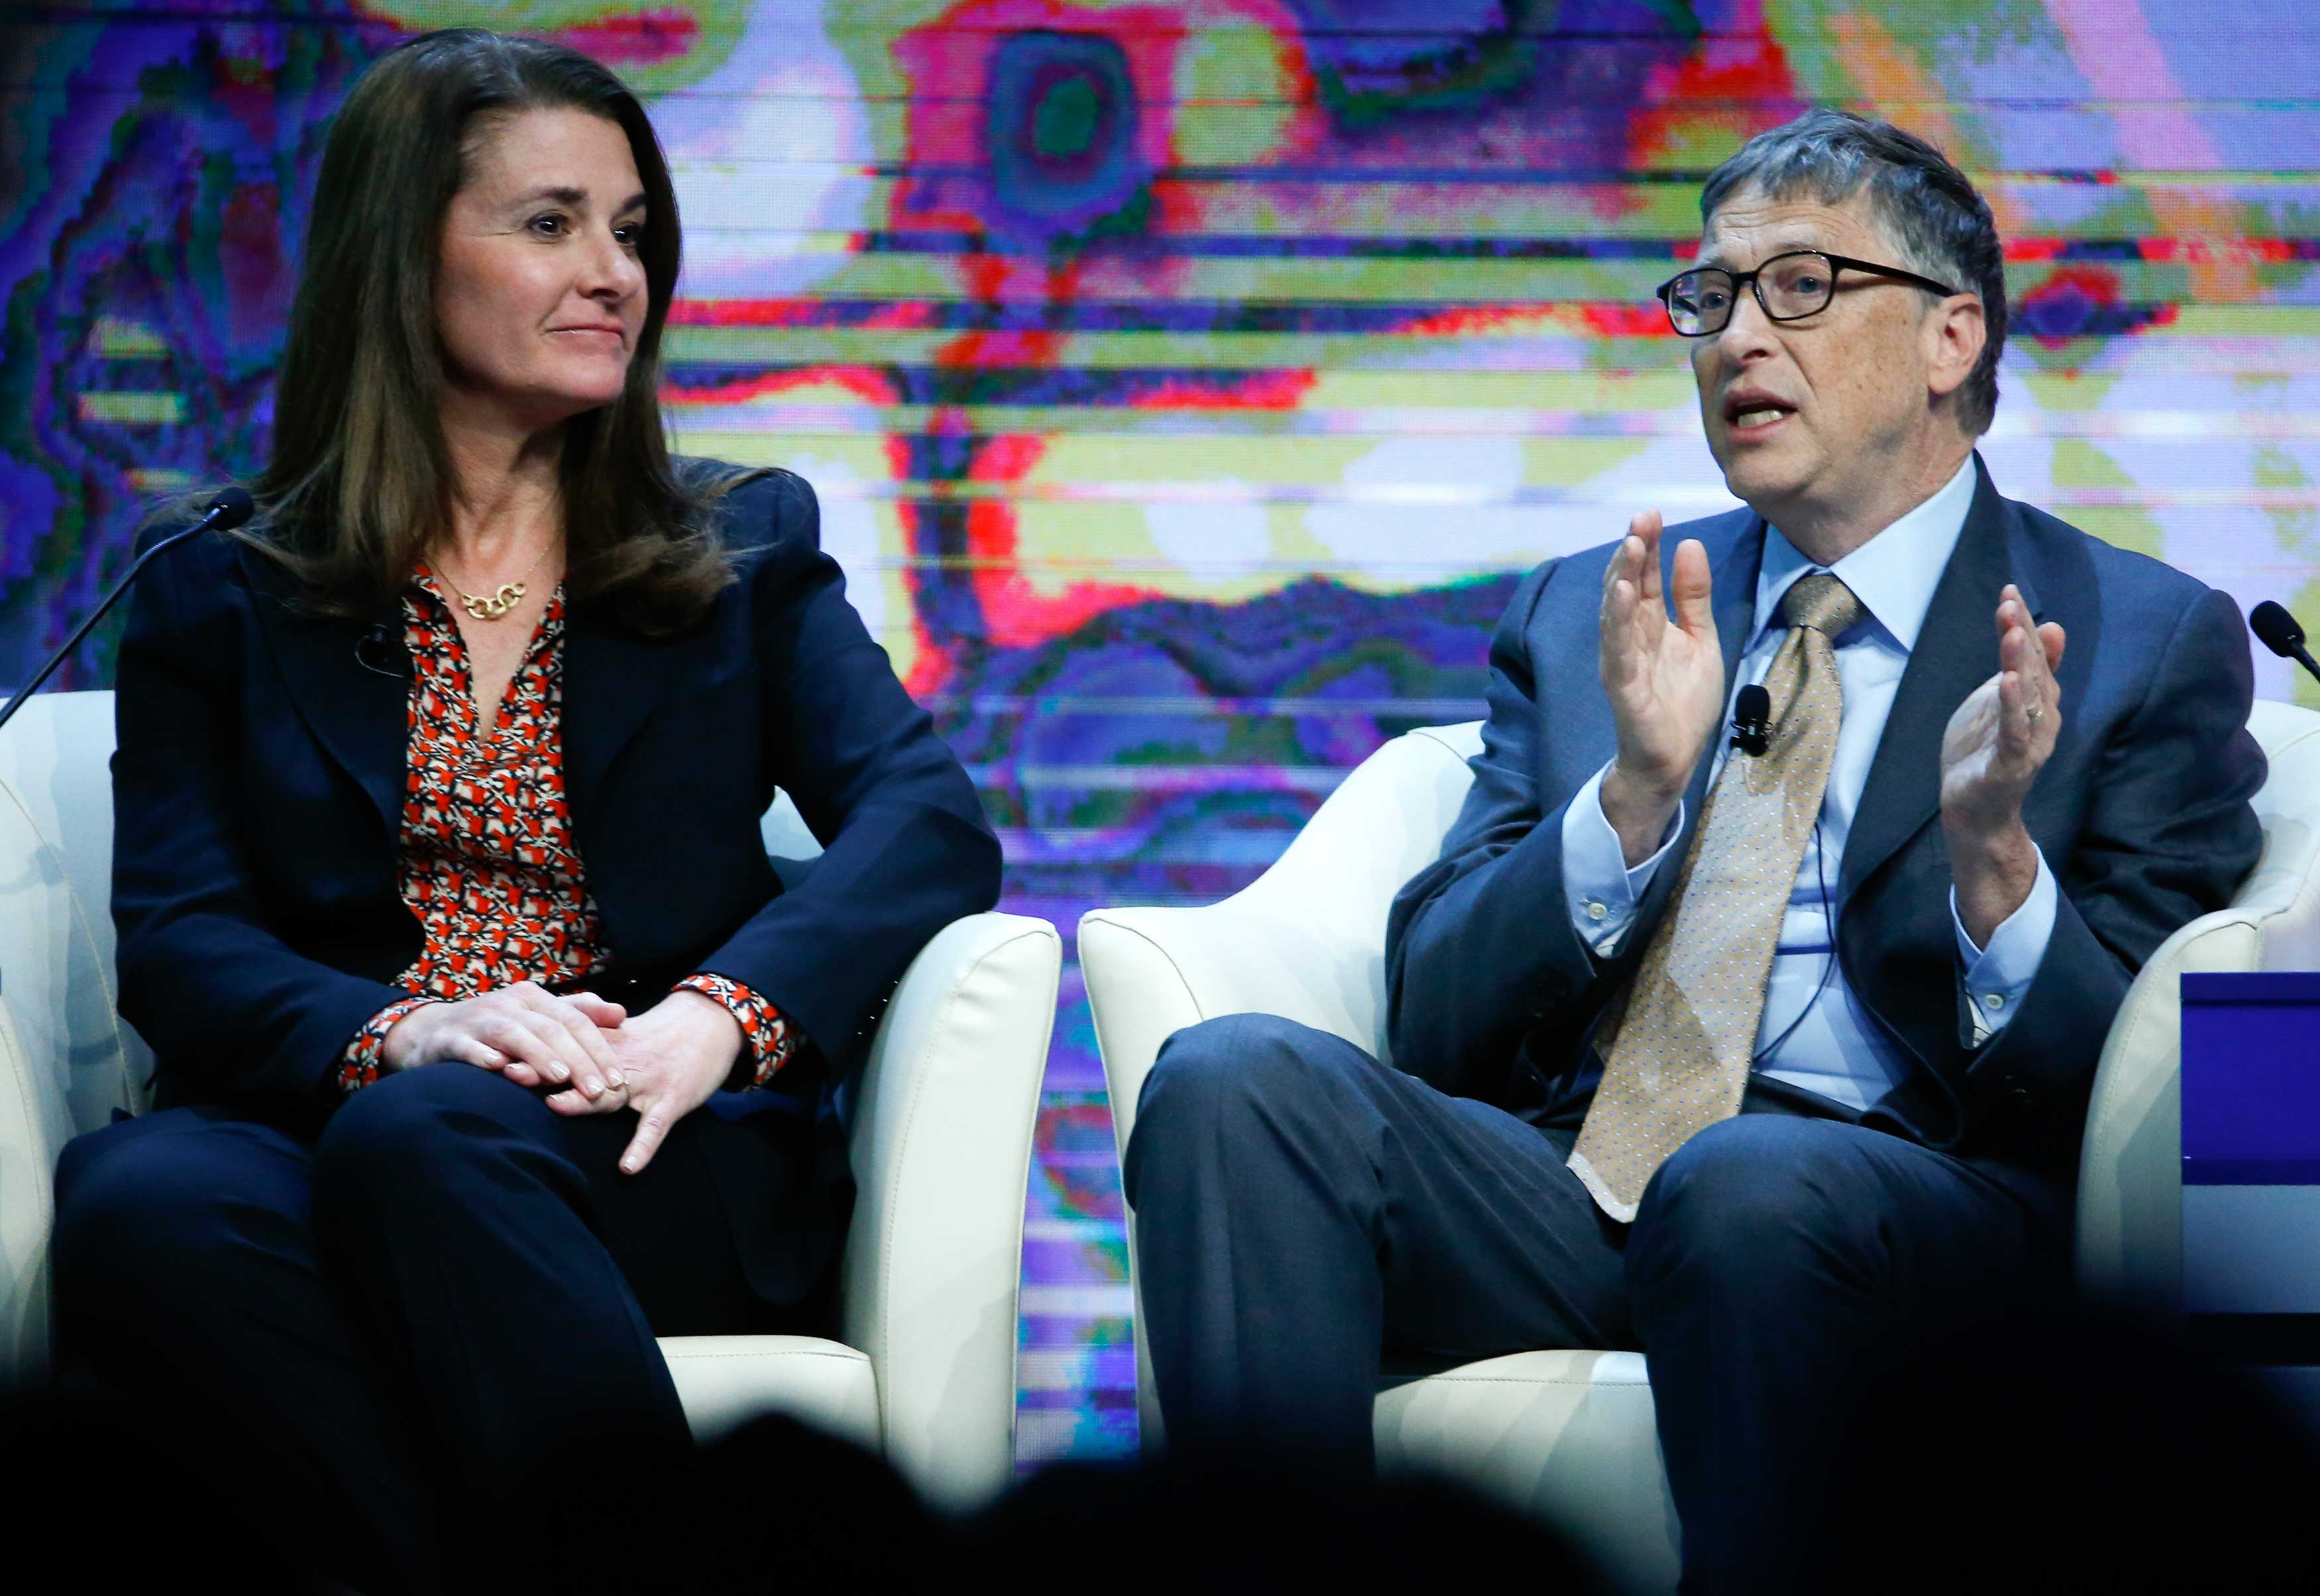 Bill and Melinda Gates at the World Economic Forum in Davos, Switzerland on Jan. 23, 2015.